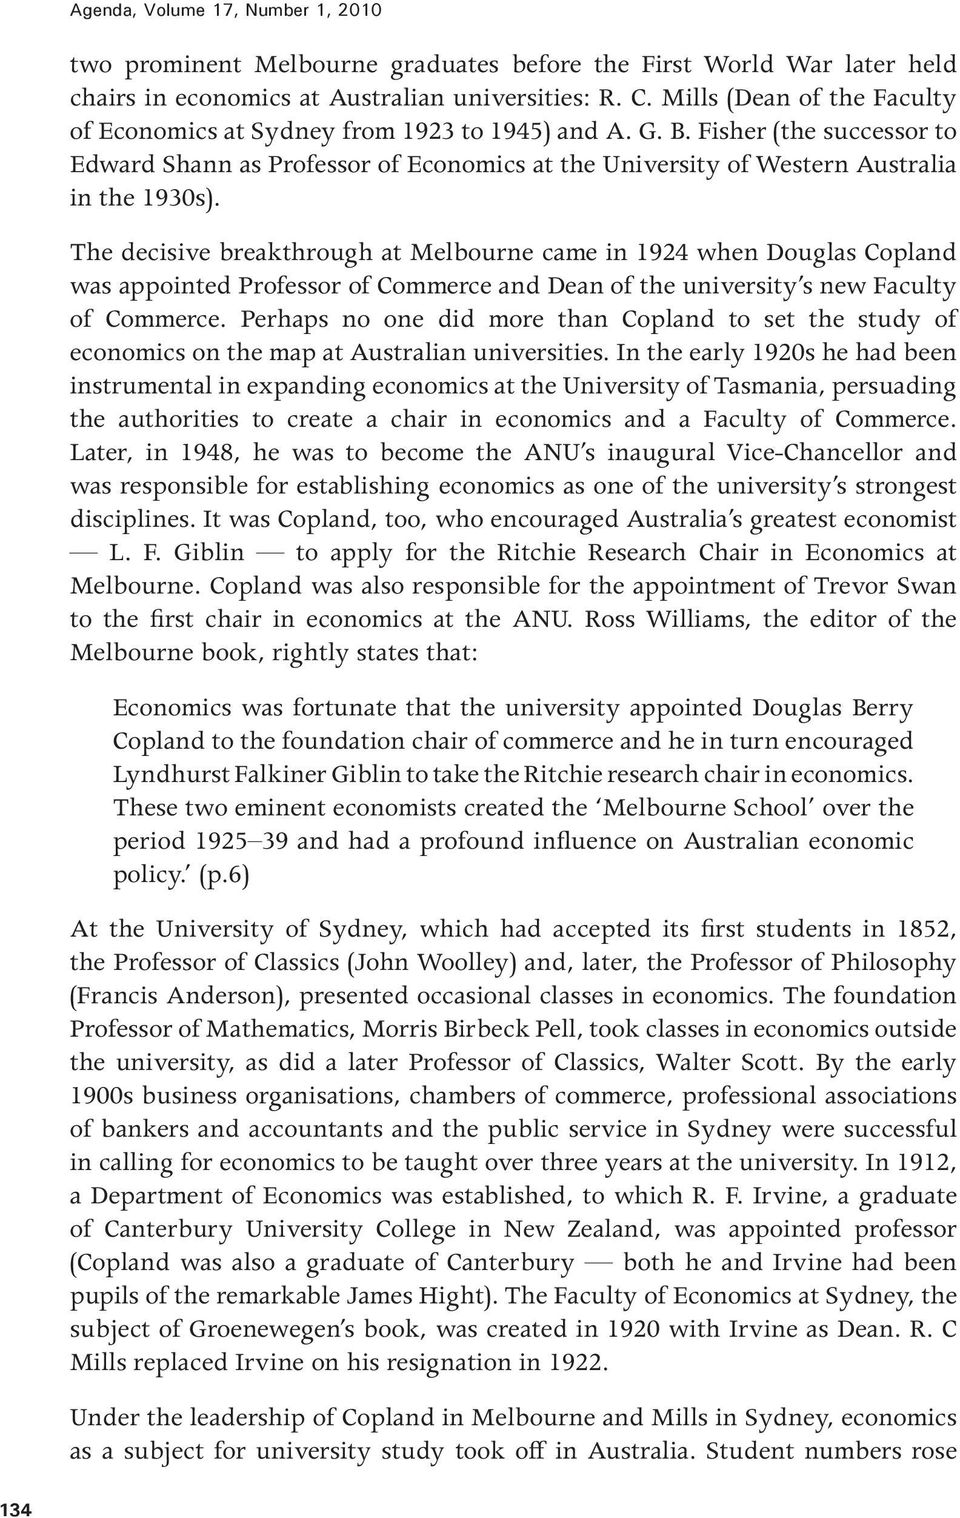 The decisive breakthrough at Melbourne came in 1924 when Douglas Copland was appointed Professor of Commerce and Dean of the university s new Faculty of Commerce.